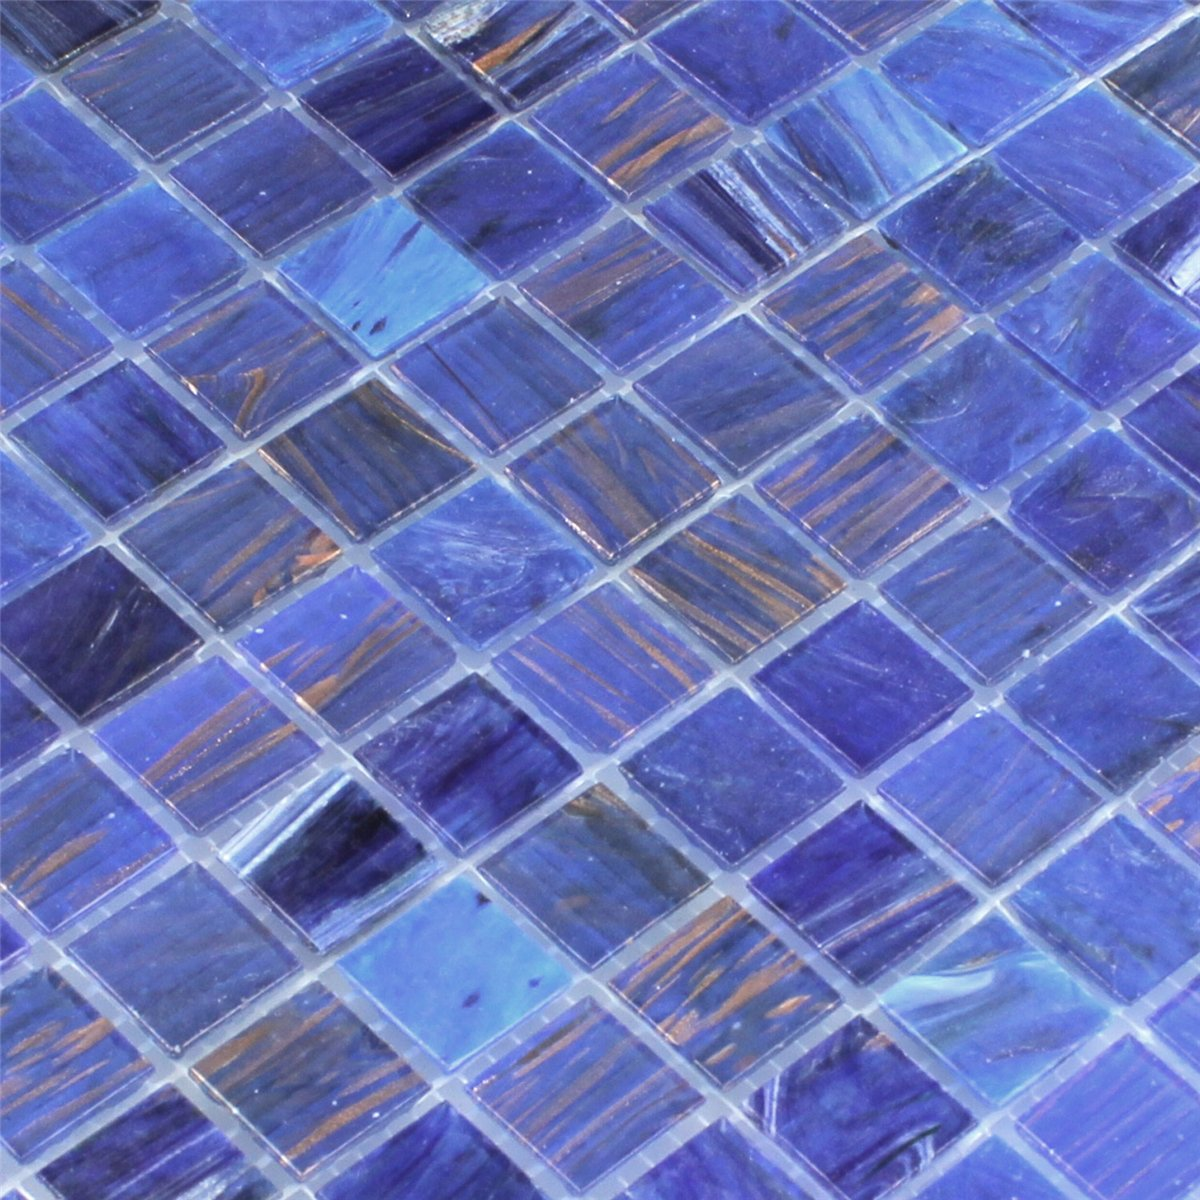 Glass Effect Mosaic Tiles Gold Star Blue | www.mosafil.co.uk